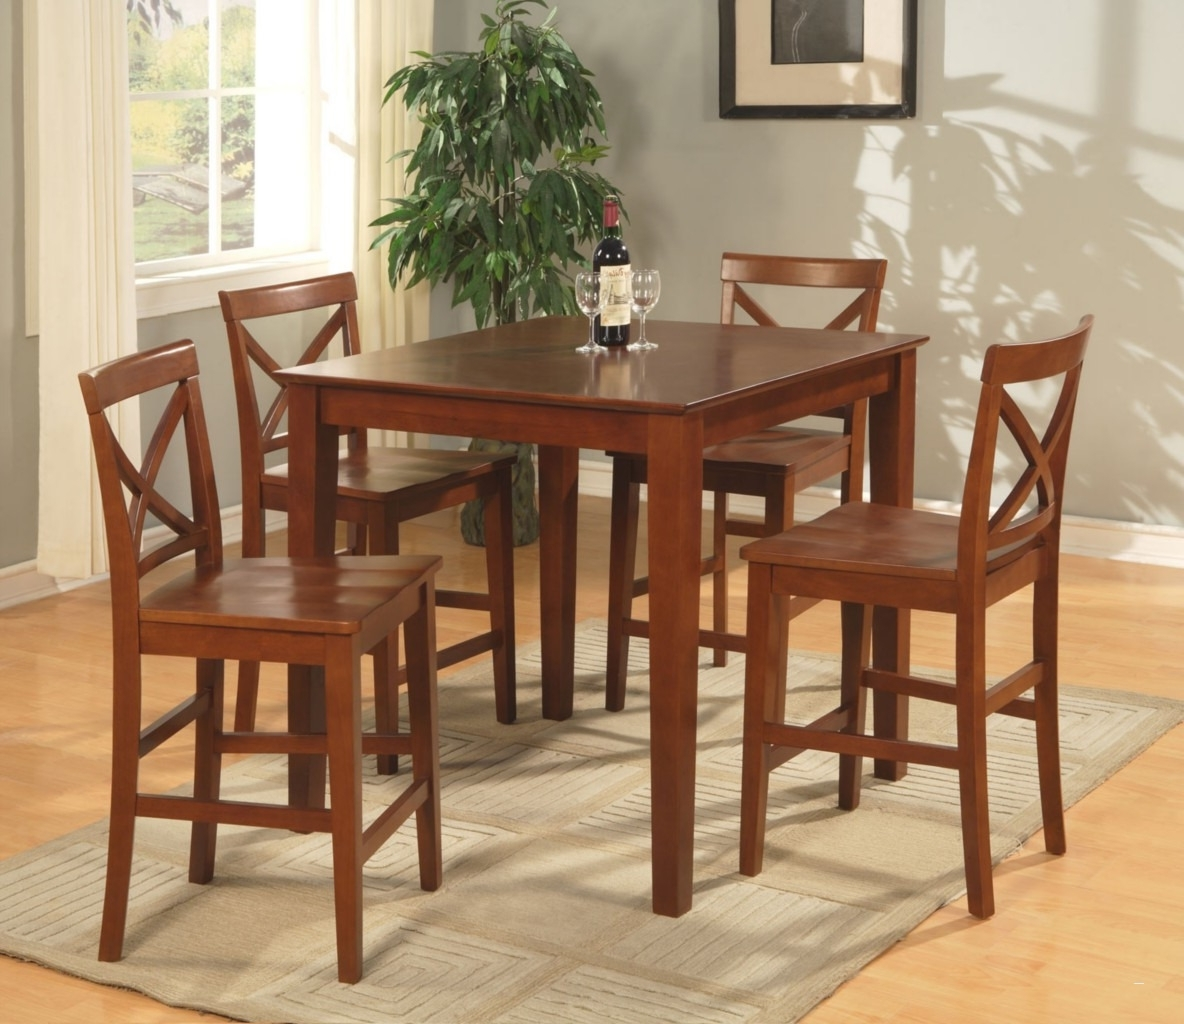 Latest Asian Dining Room Table Luxury Nice Square Dining Table Sets Intended For Asian Dining Tables (View 18 of 25)